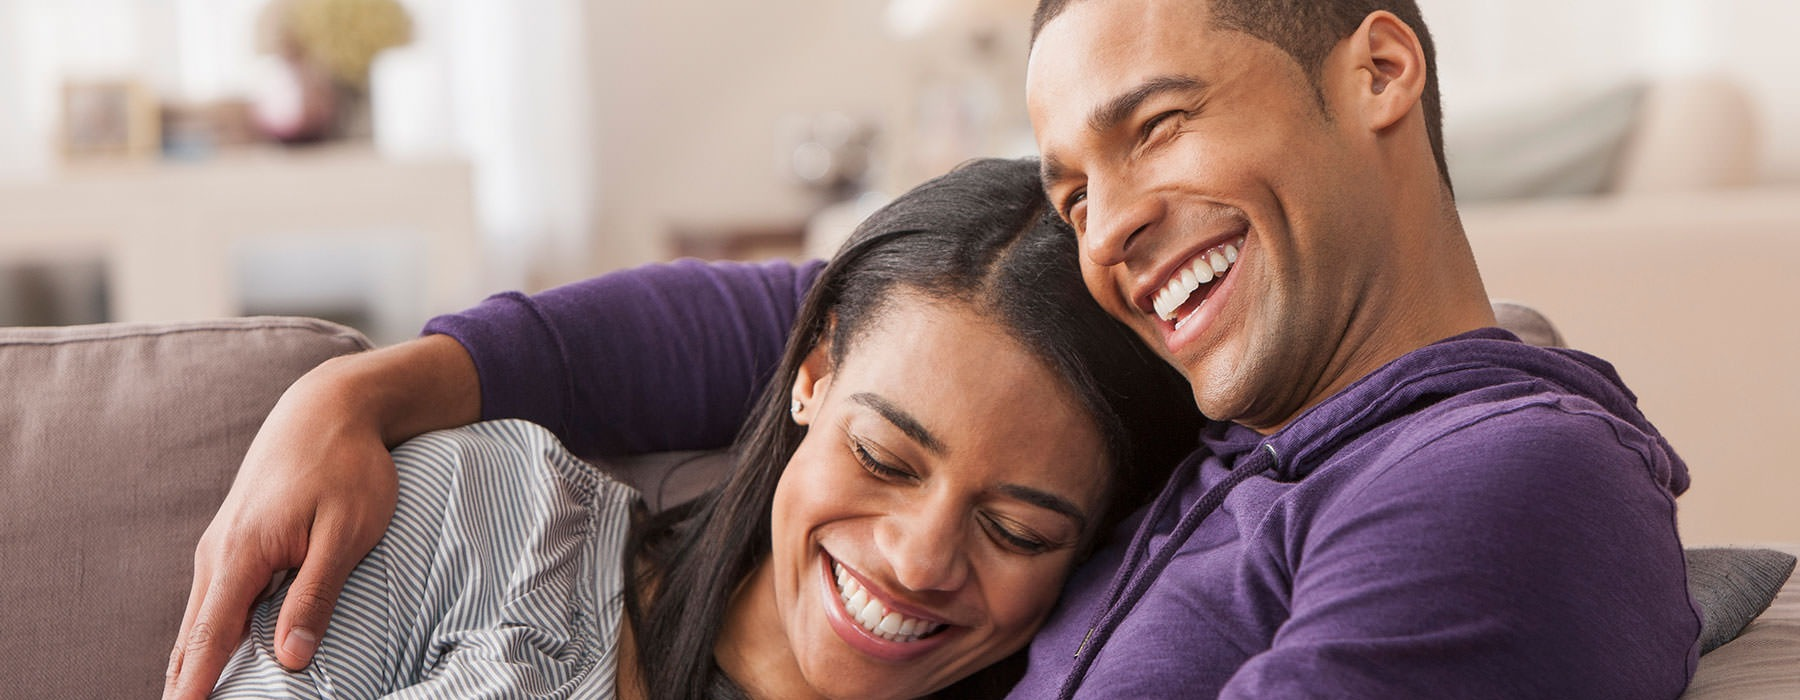 a lifestyle image of a couple holding each other and smiling